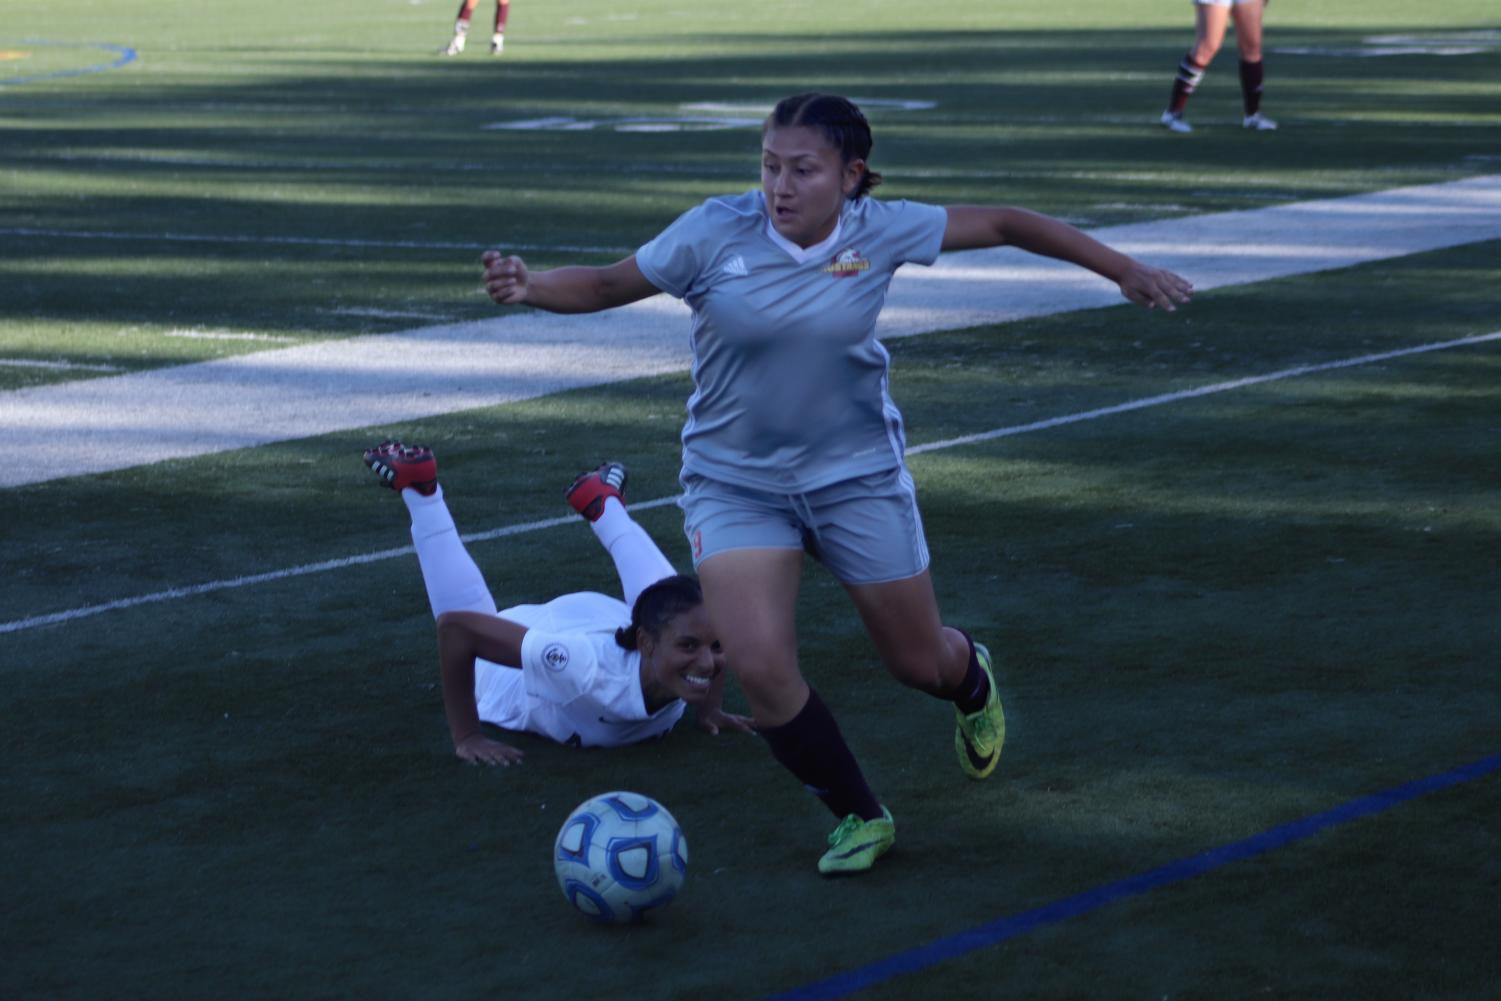 Adriana Urrutia dodges opposing player.